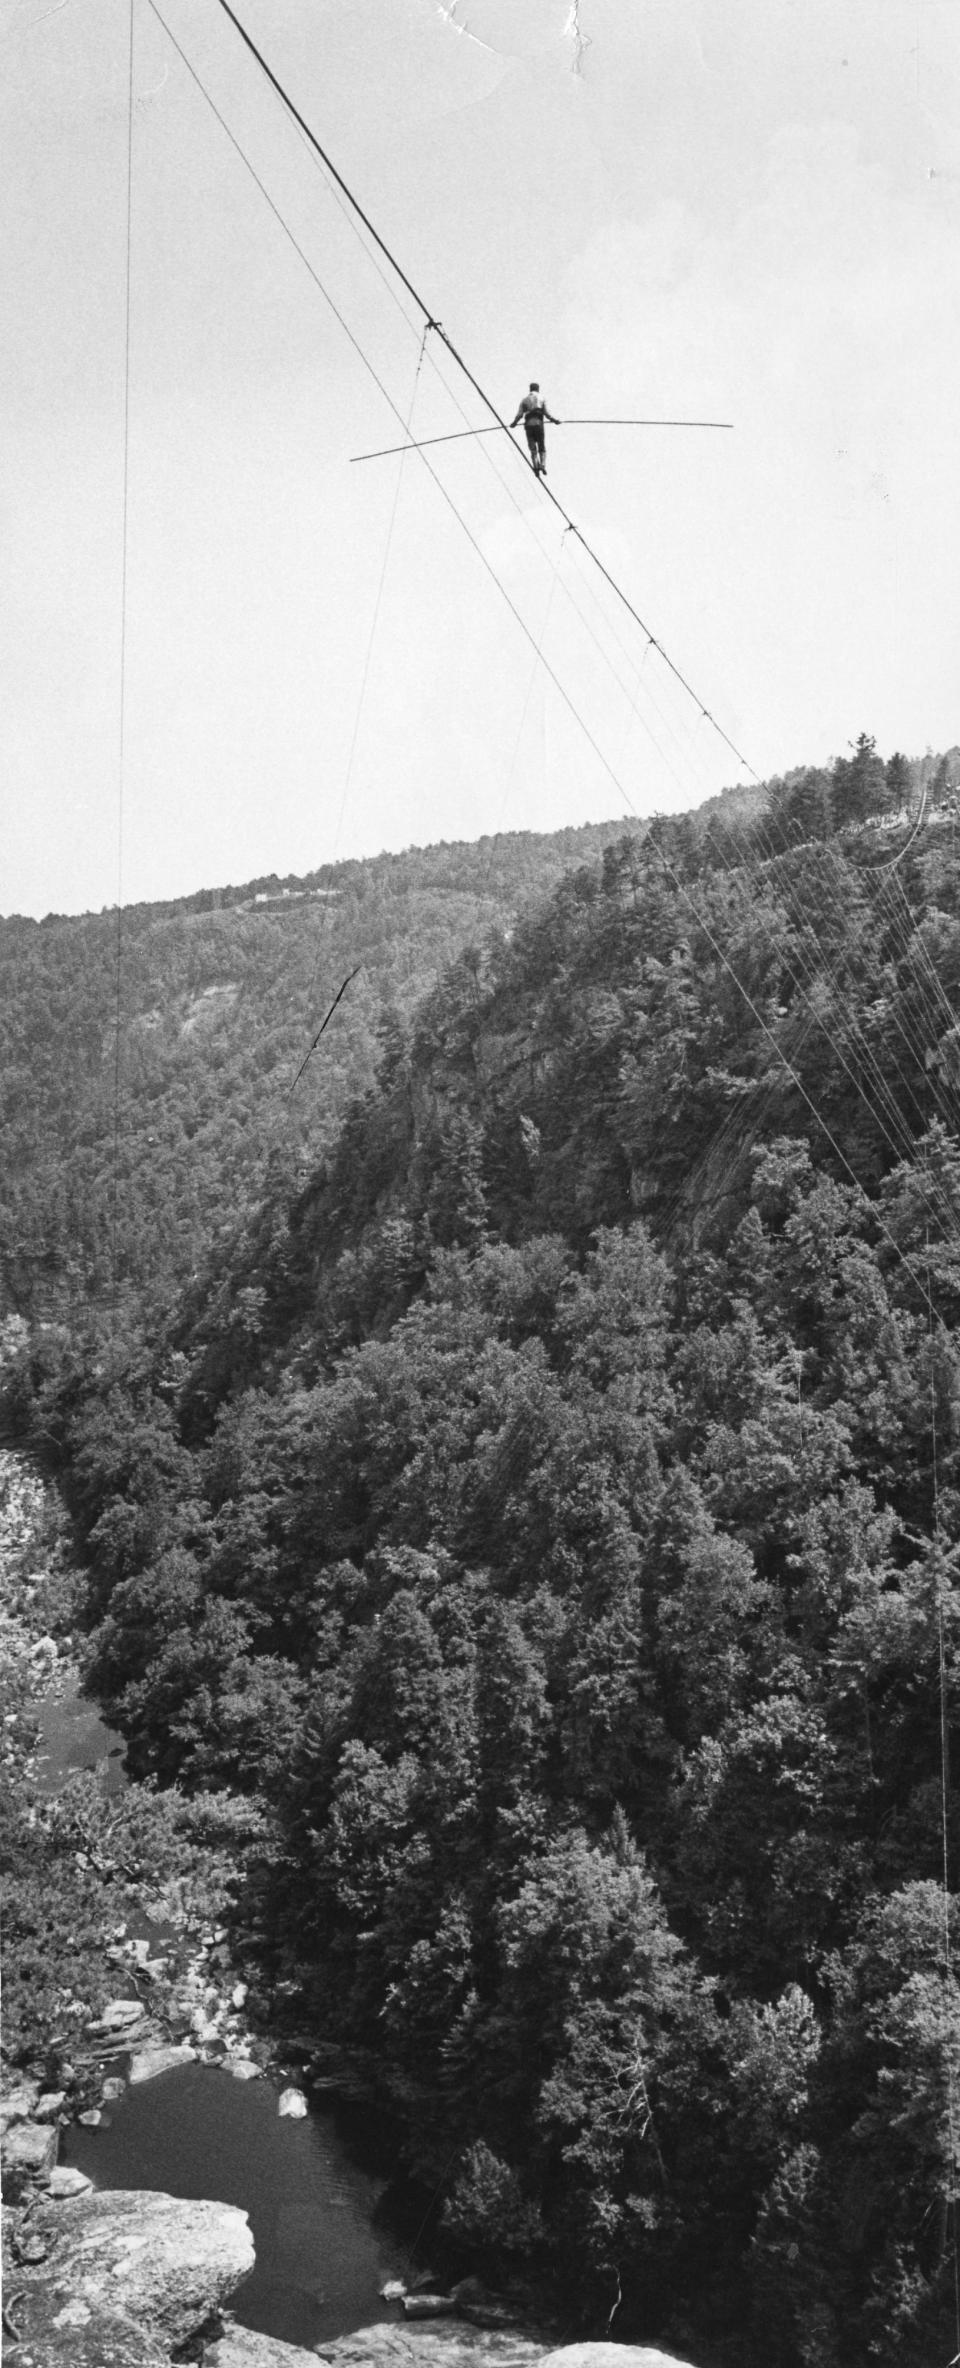 Karl Wallenda, perched hundreds of feet in air, walks on a tightrope over Tallulah Gorge in Georgia on July 18, 1970. Crowds lined cliffs on both sides of the famed chasm to see the aerialist's stunt. (Dwight Ross Jr./Atlanta Journal-Constitution via AP)